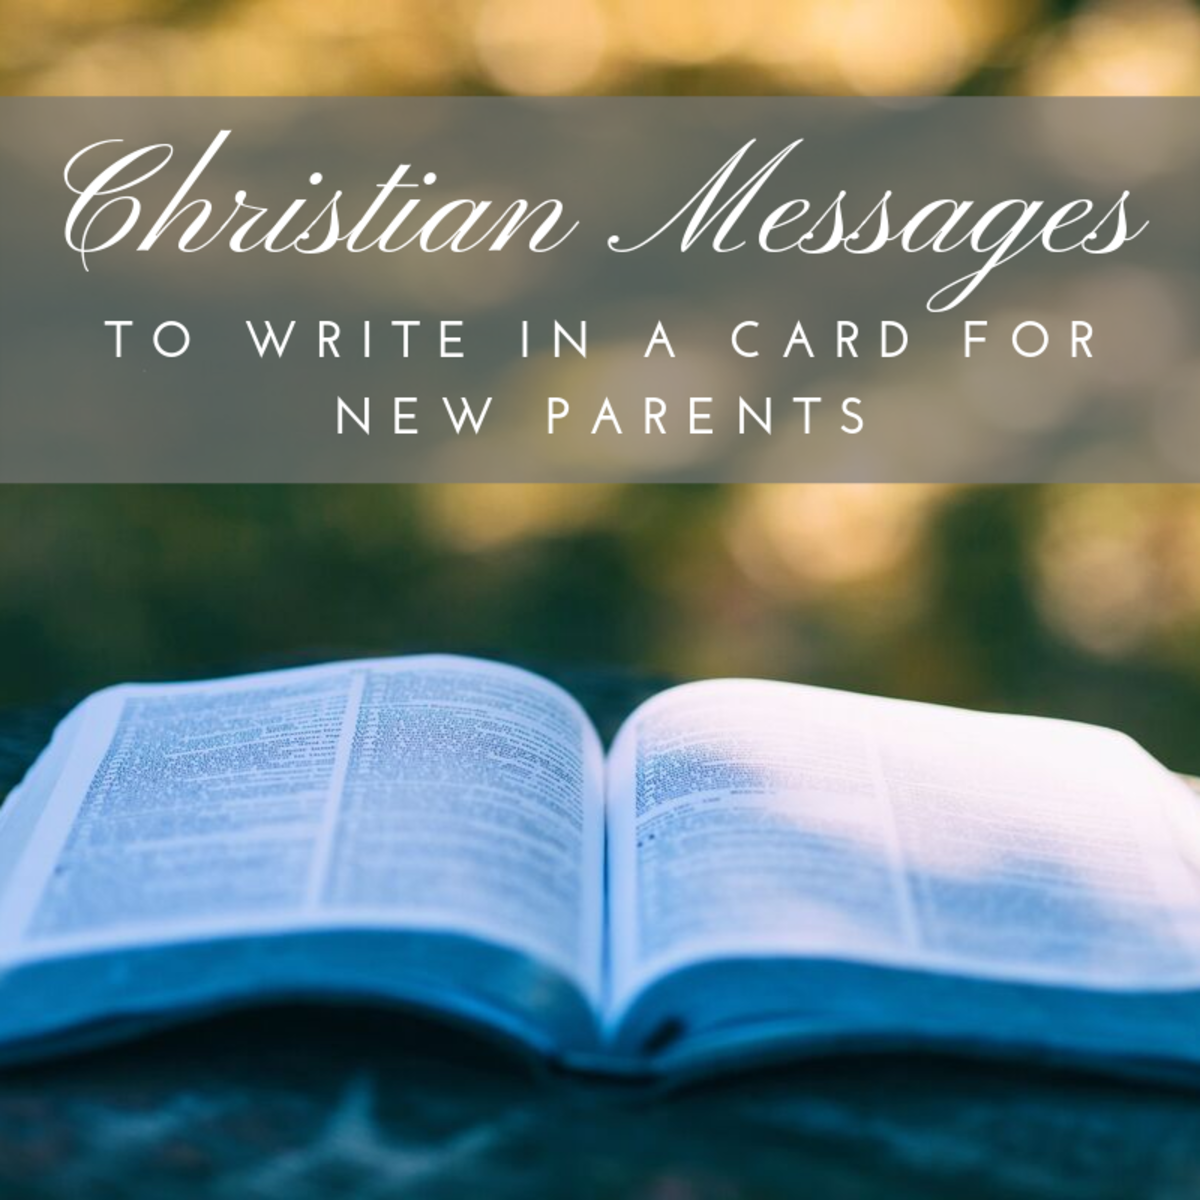 If you're writing a congratulatory card for the new parents in your life and want to include a message of faith, read over these examples for ideas and inspiration.